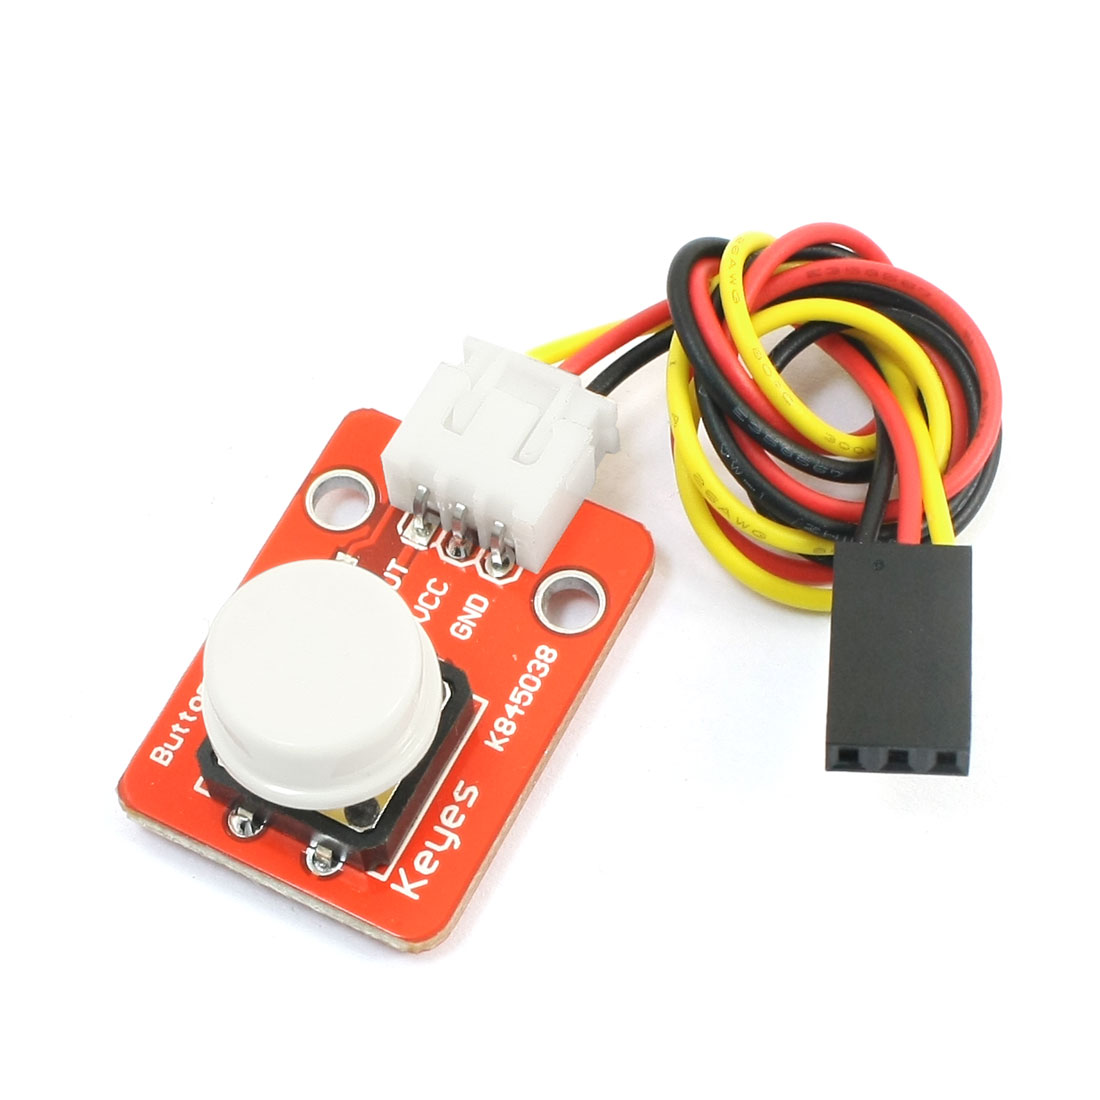 Momentary White Round Push Button Switch Module Board for MCU